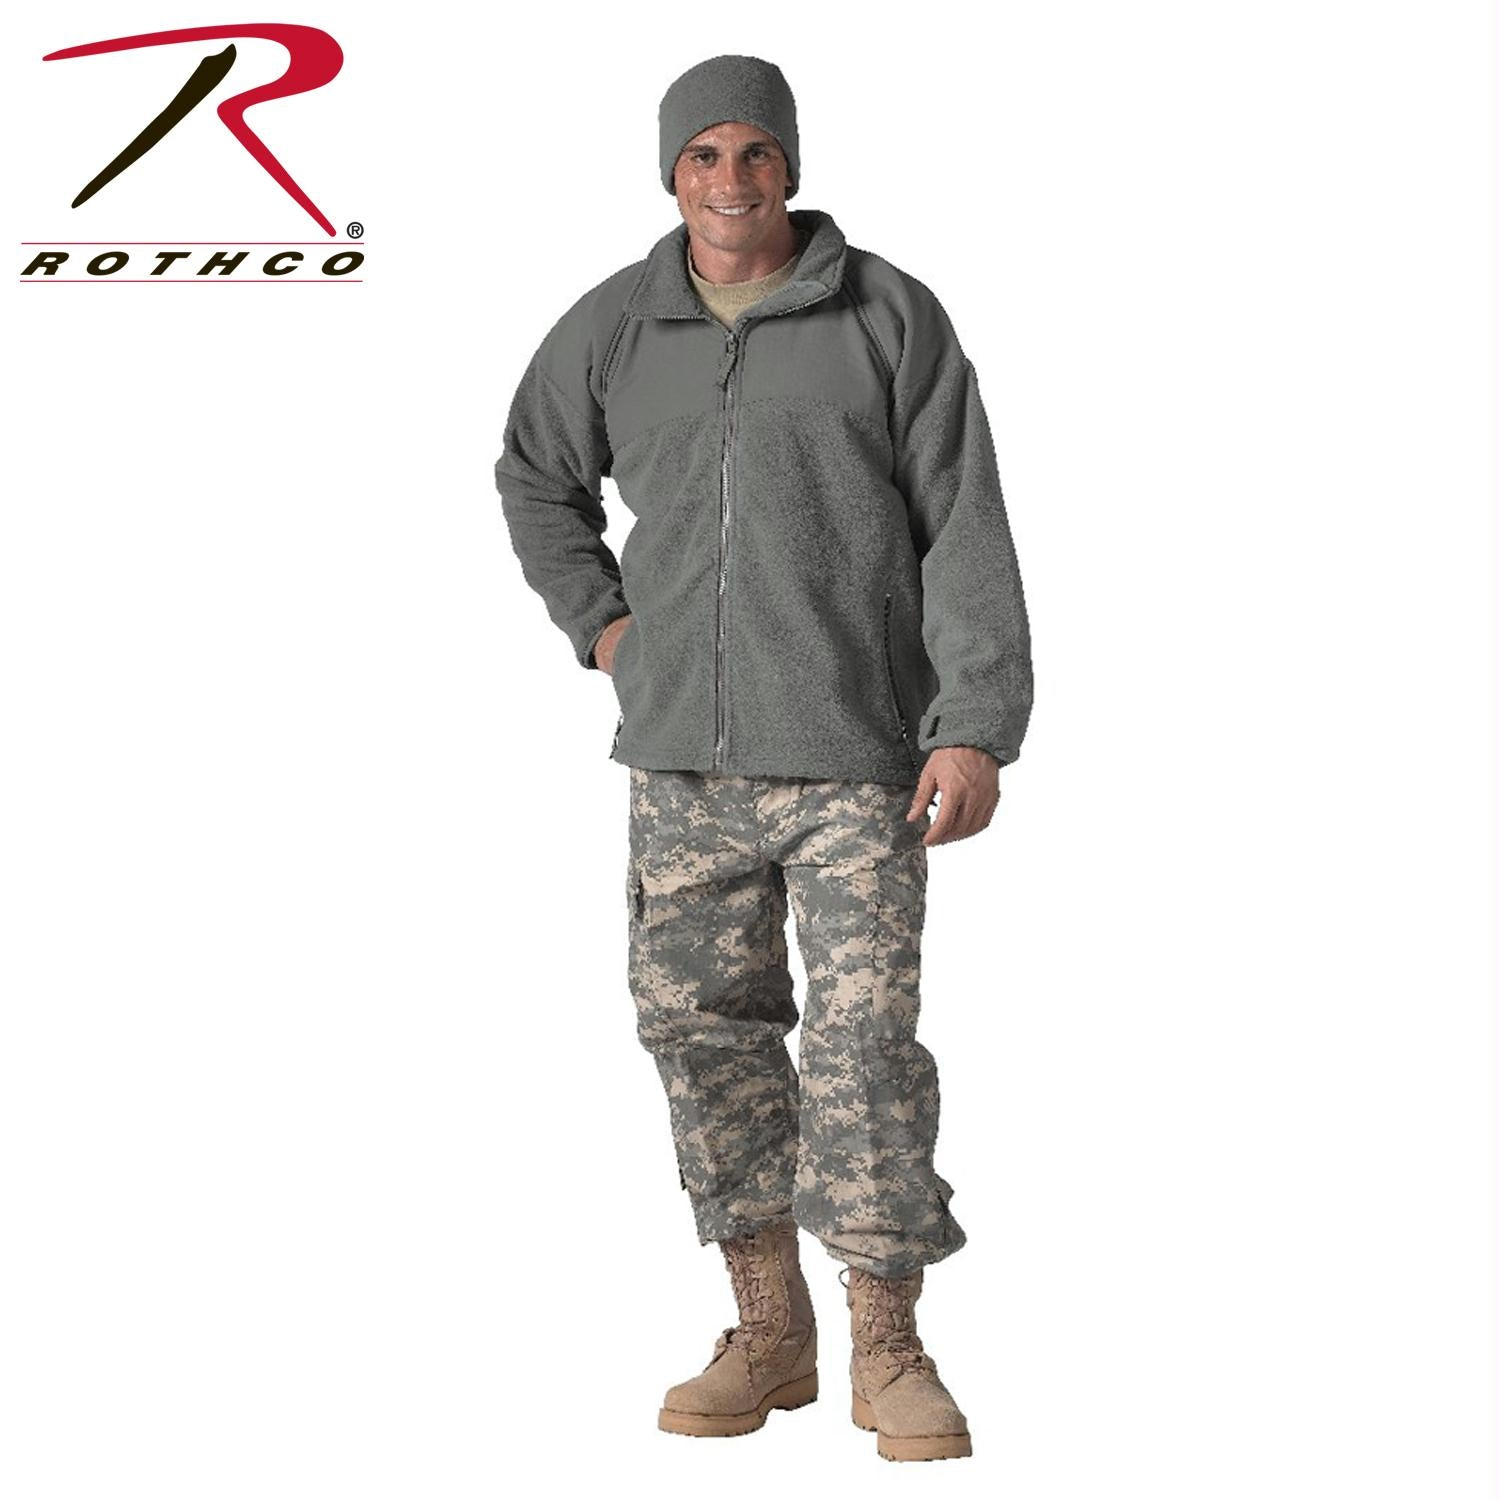 Rothco Military ECWCS Polar Fleece Jacket/Liner